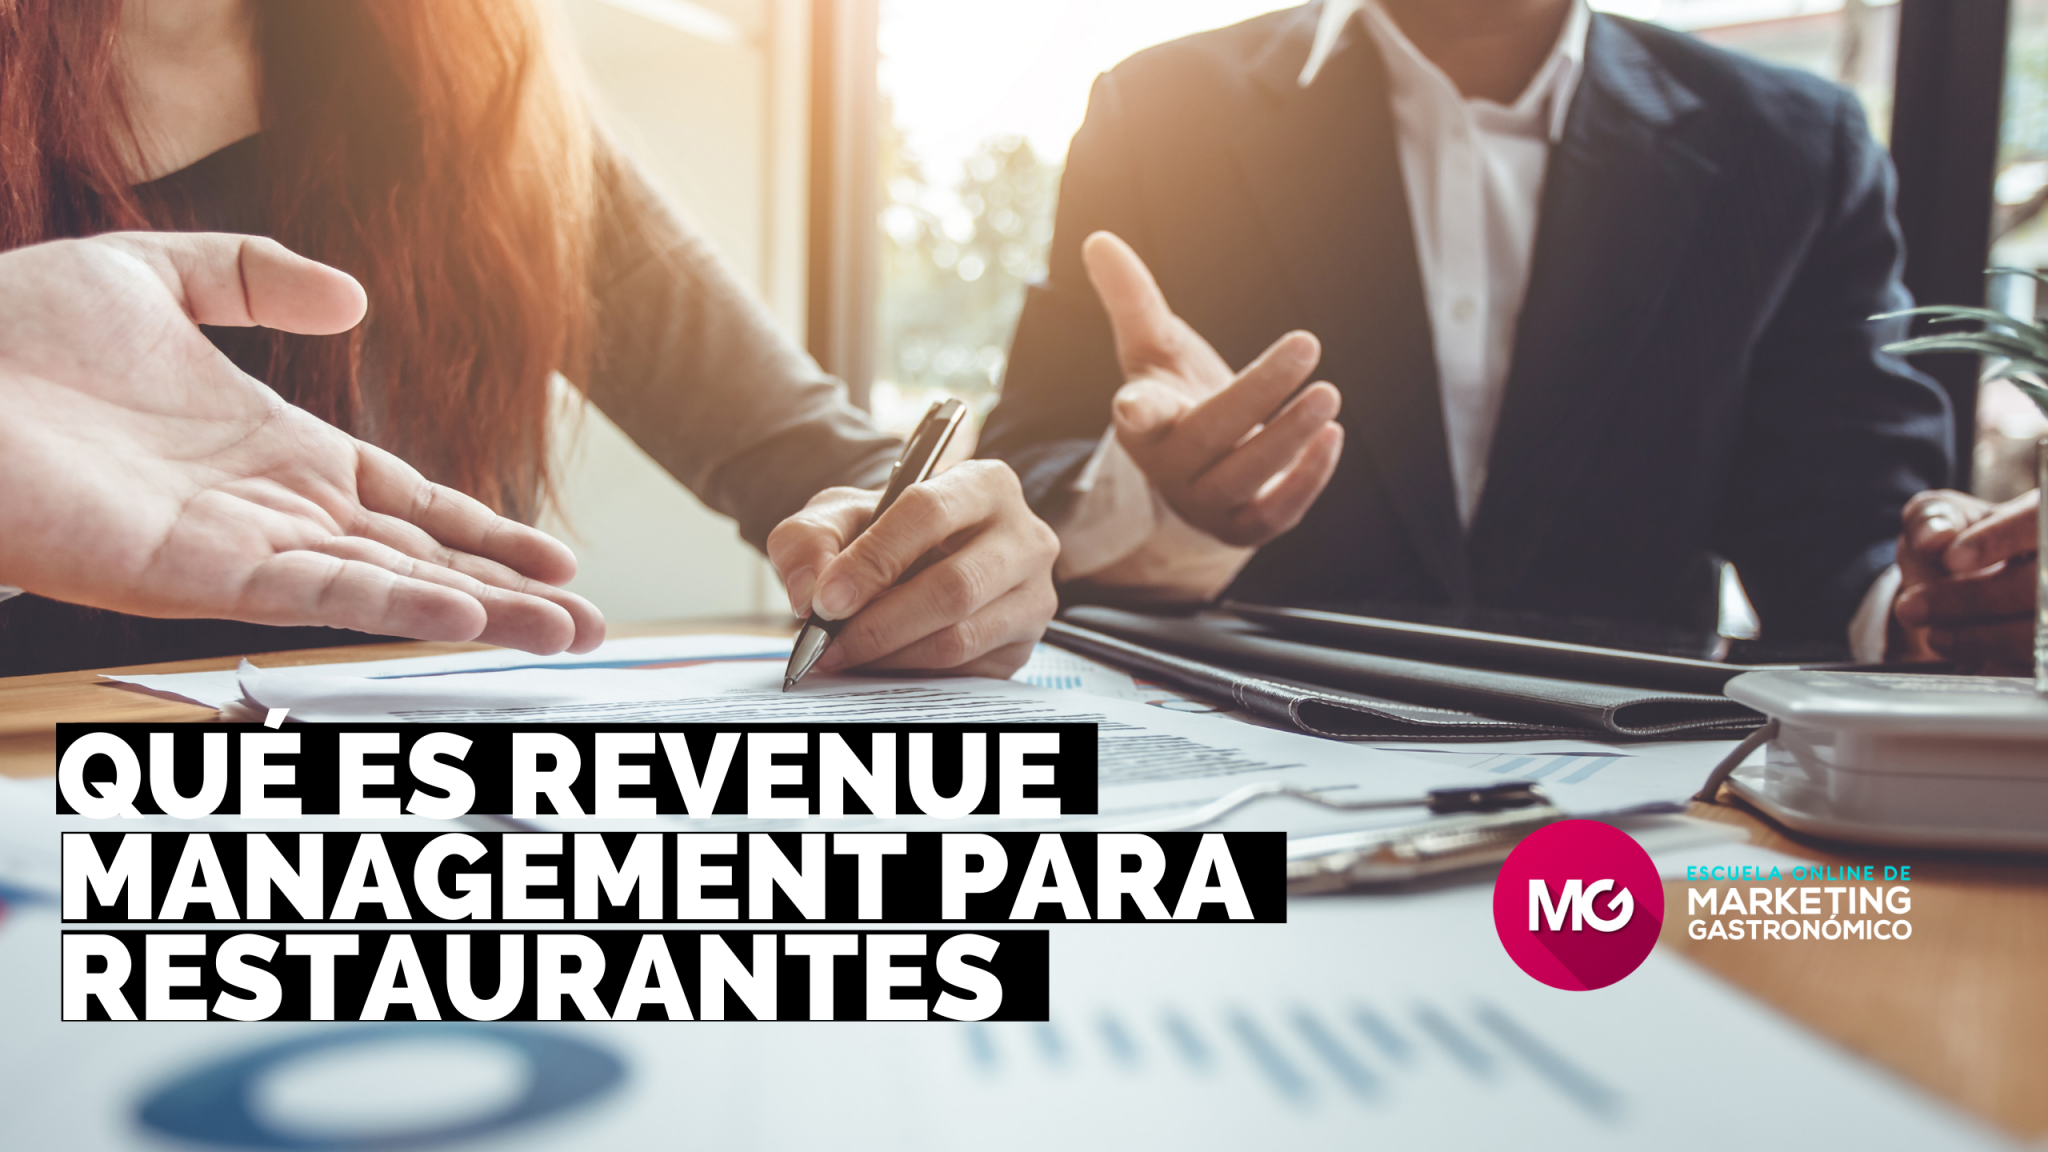 QUE ES Revenue Management para Restaurantes